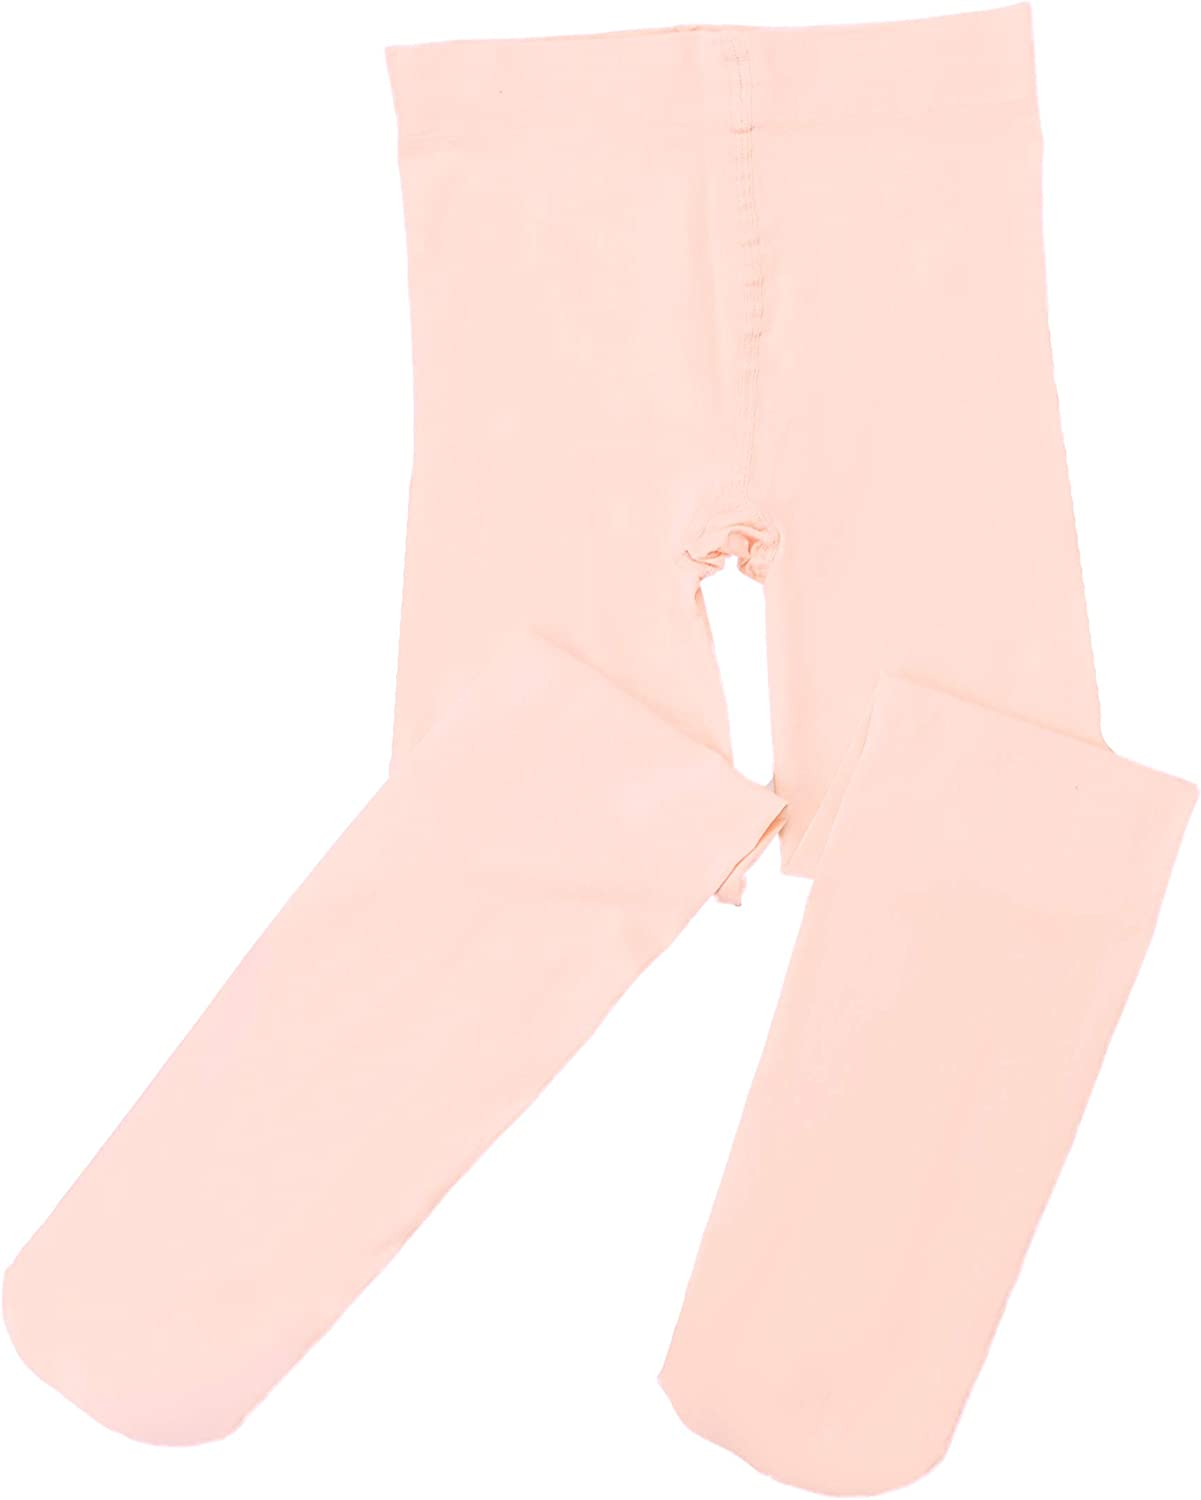 Girls Ballet Footed Tights,Dance Leotards/Legging Pants Tight,Ultra Soft Self Knit Waistband for Toddler/Little/Big Kid